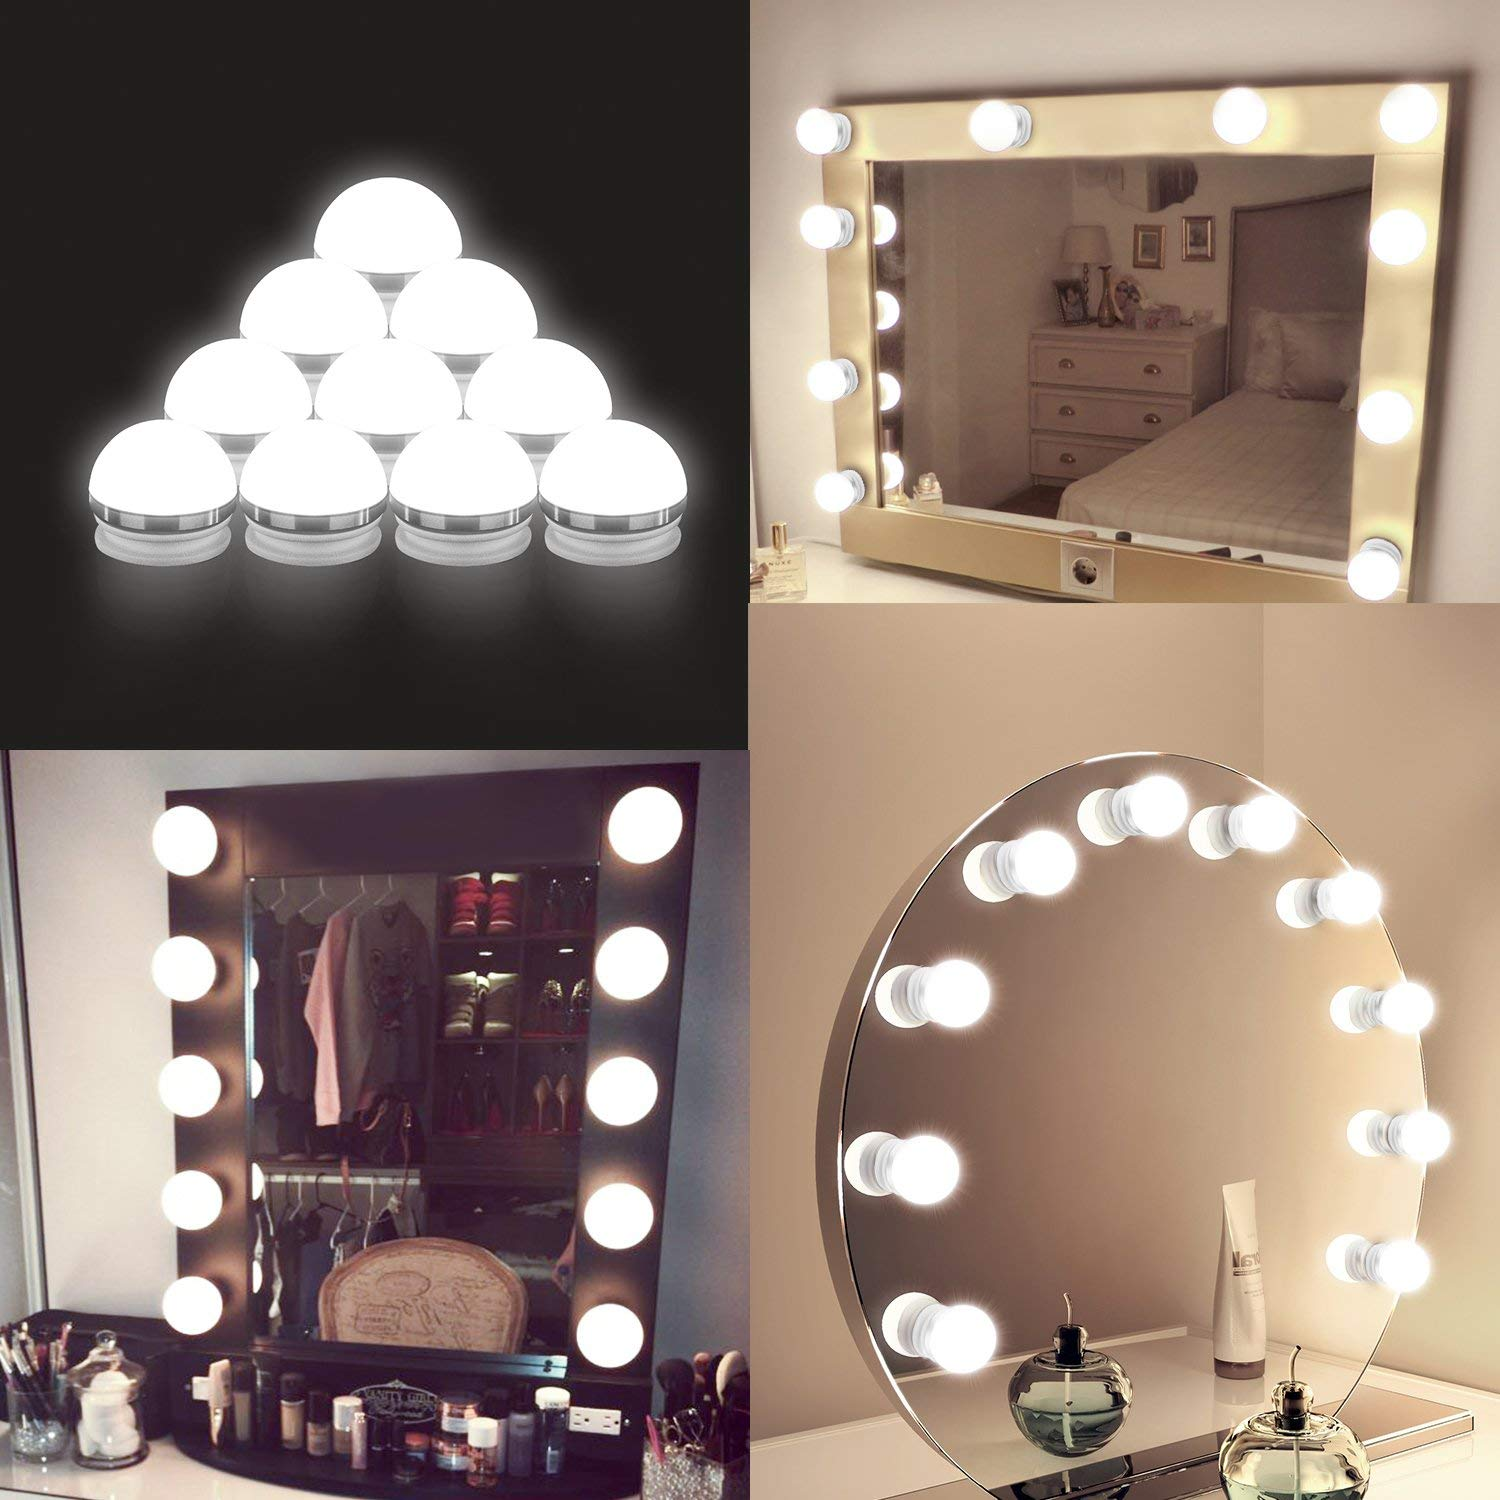 Coolmade Vanity Lights Kit Hollywood Style Makeup Light Bulbs With Stickers  Attached To Bathroom Wall Or Dressing Table Mirrors, With Dimmable Switch  ...